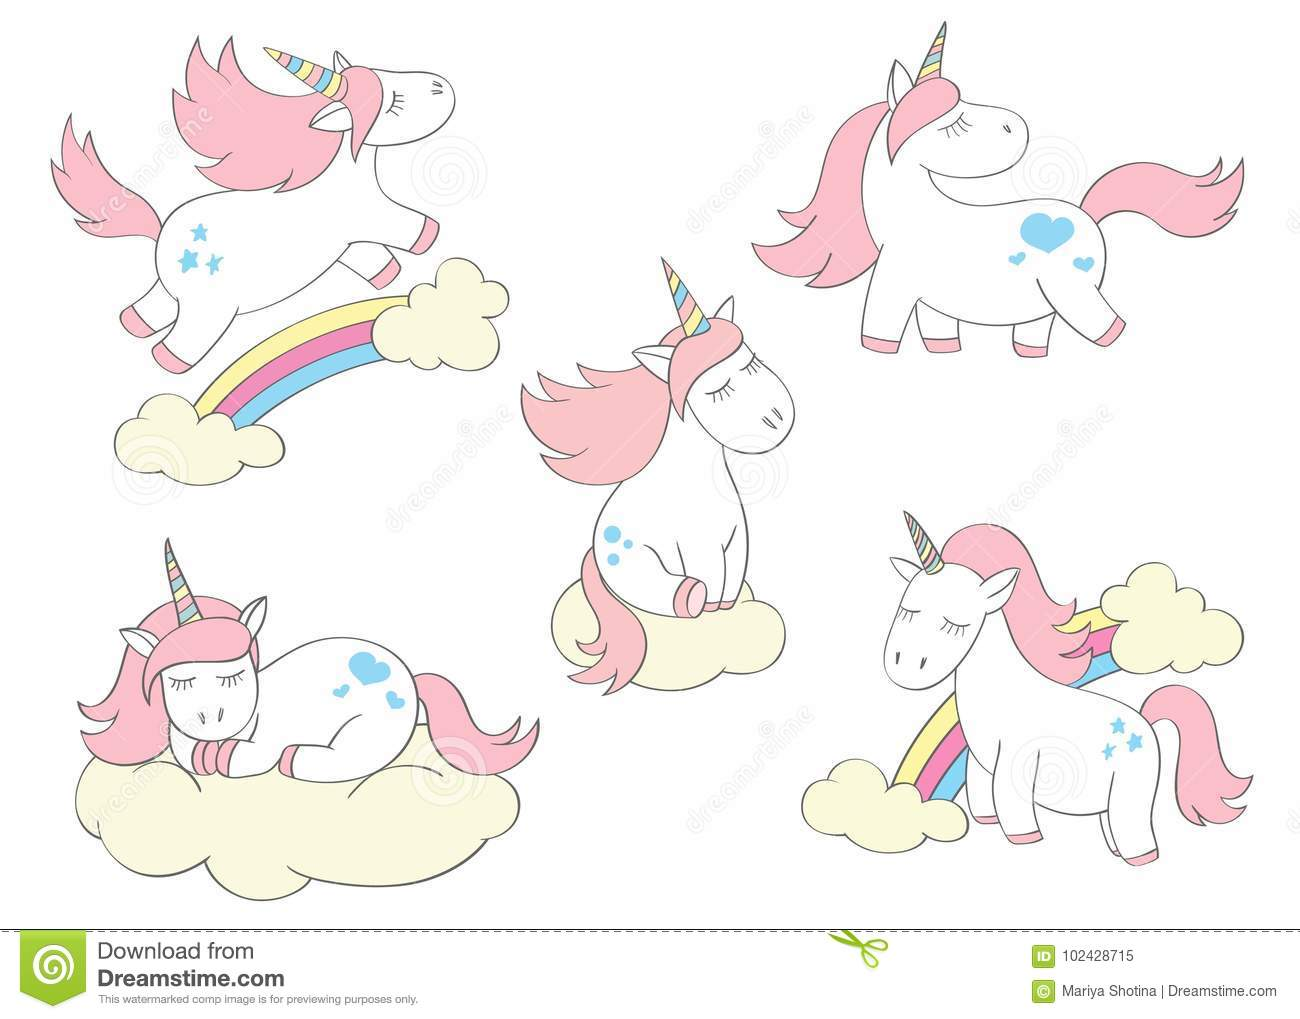 Magic cute unicorns set in cartoon style. Doodle unicorns for cards, posters, t-shirt prints